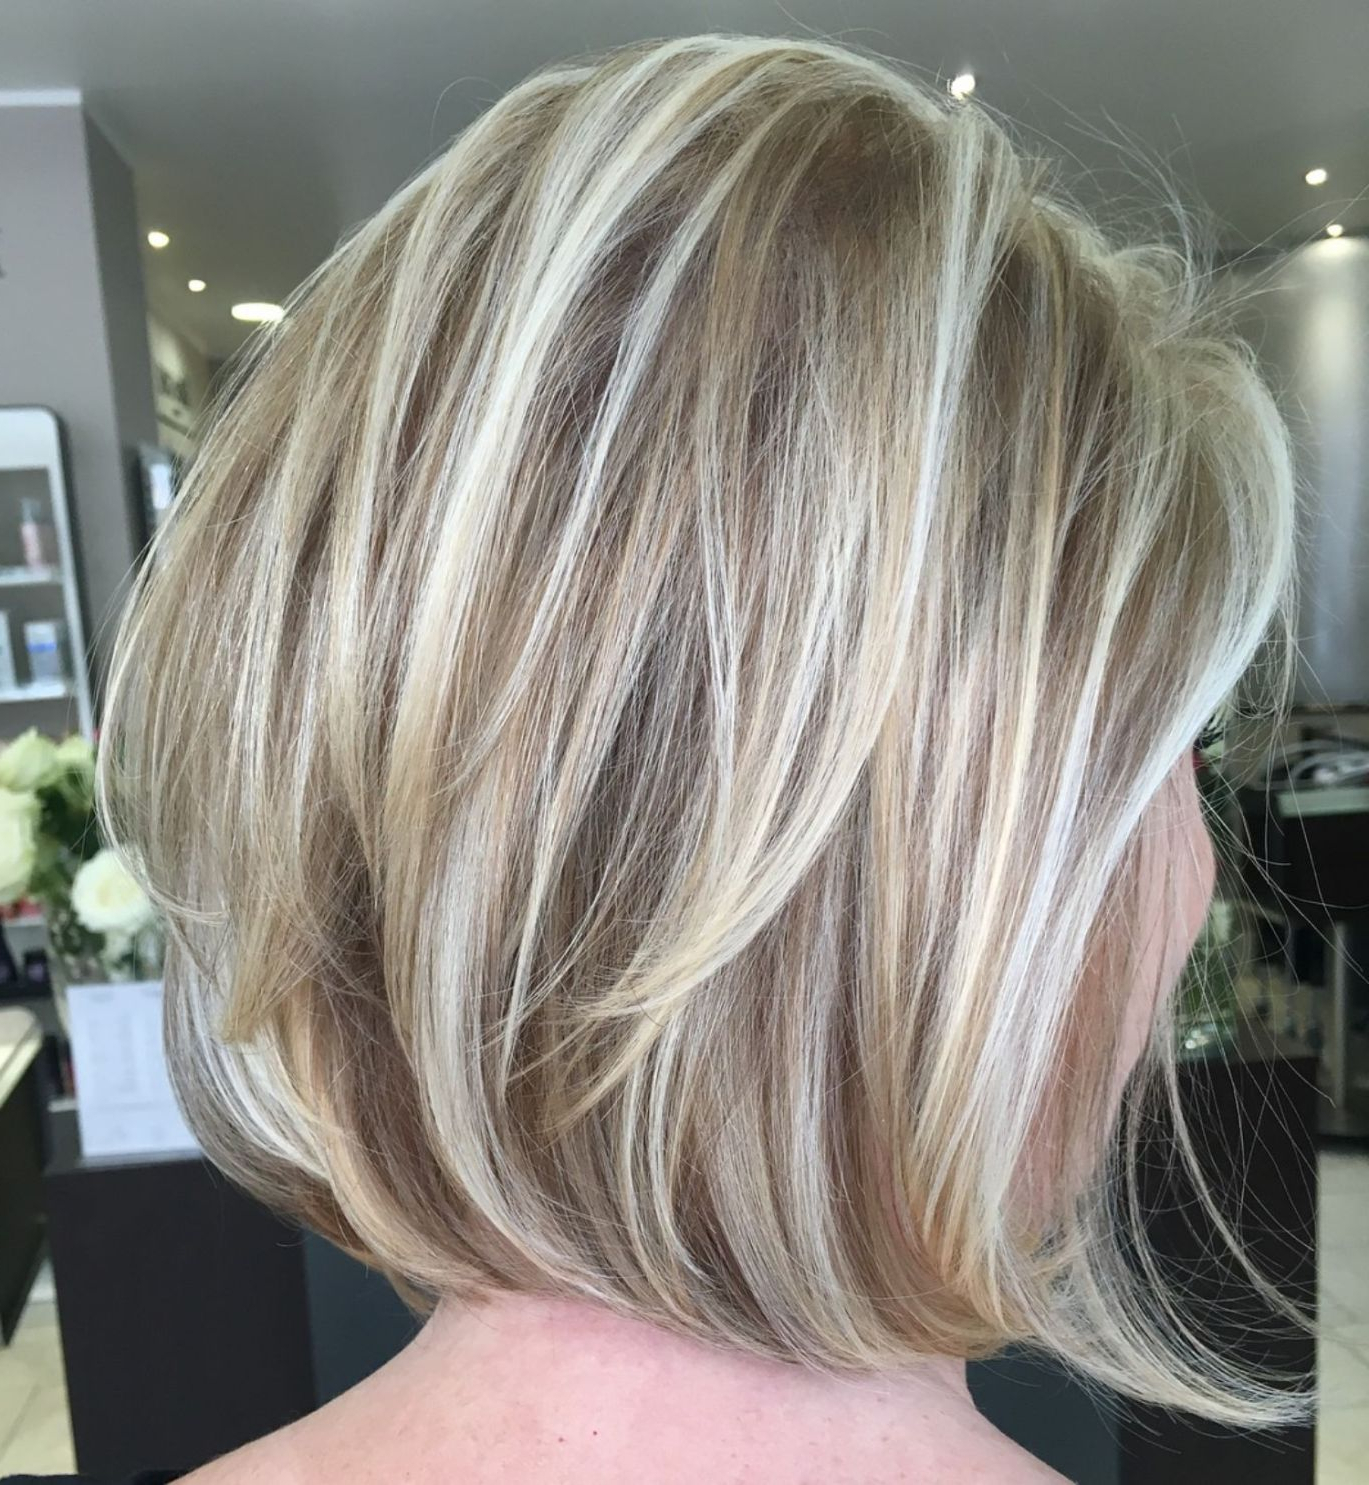 60 Layered Bob Styles: Modern Haircuts With Layers For Any Occasion With Regard To Most Up To Date Straight Tousled Blonde Balayage Bob Hairstyles (View 3 of 20)